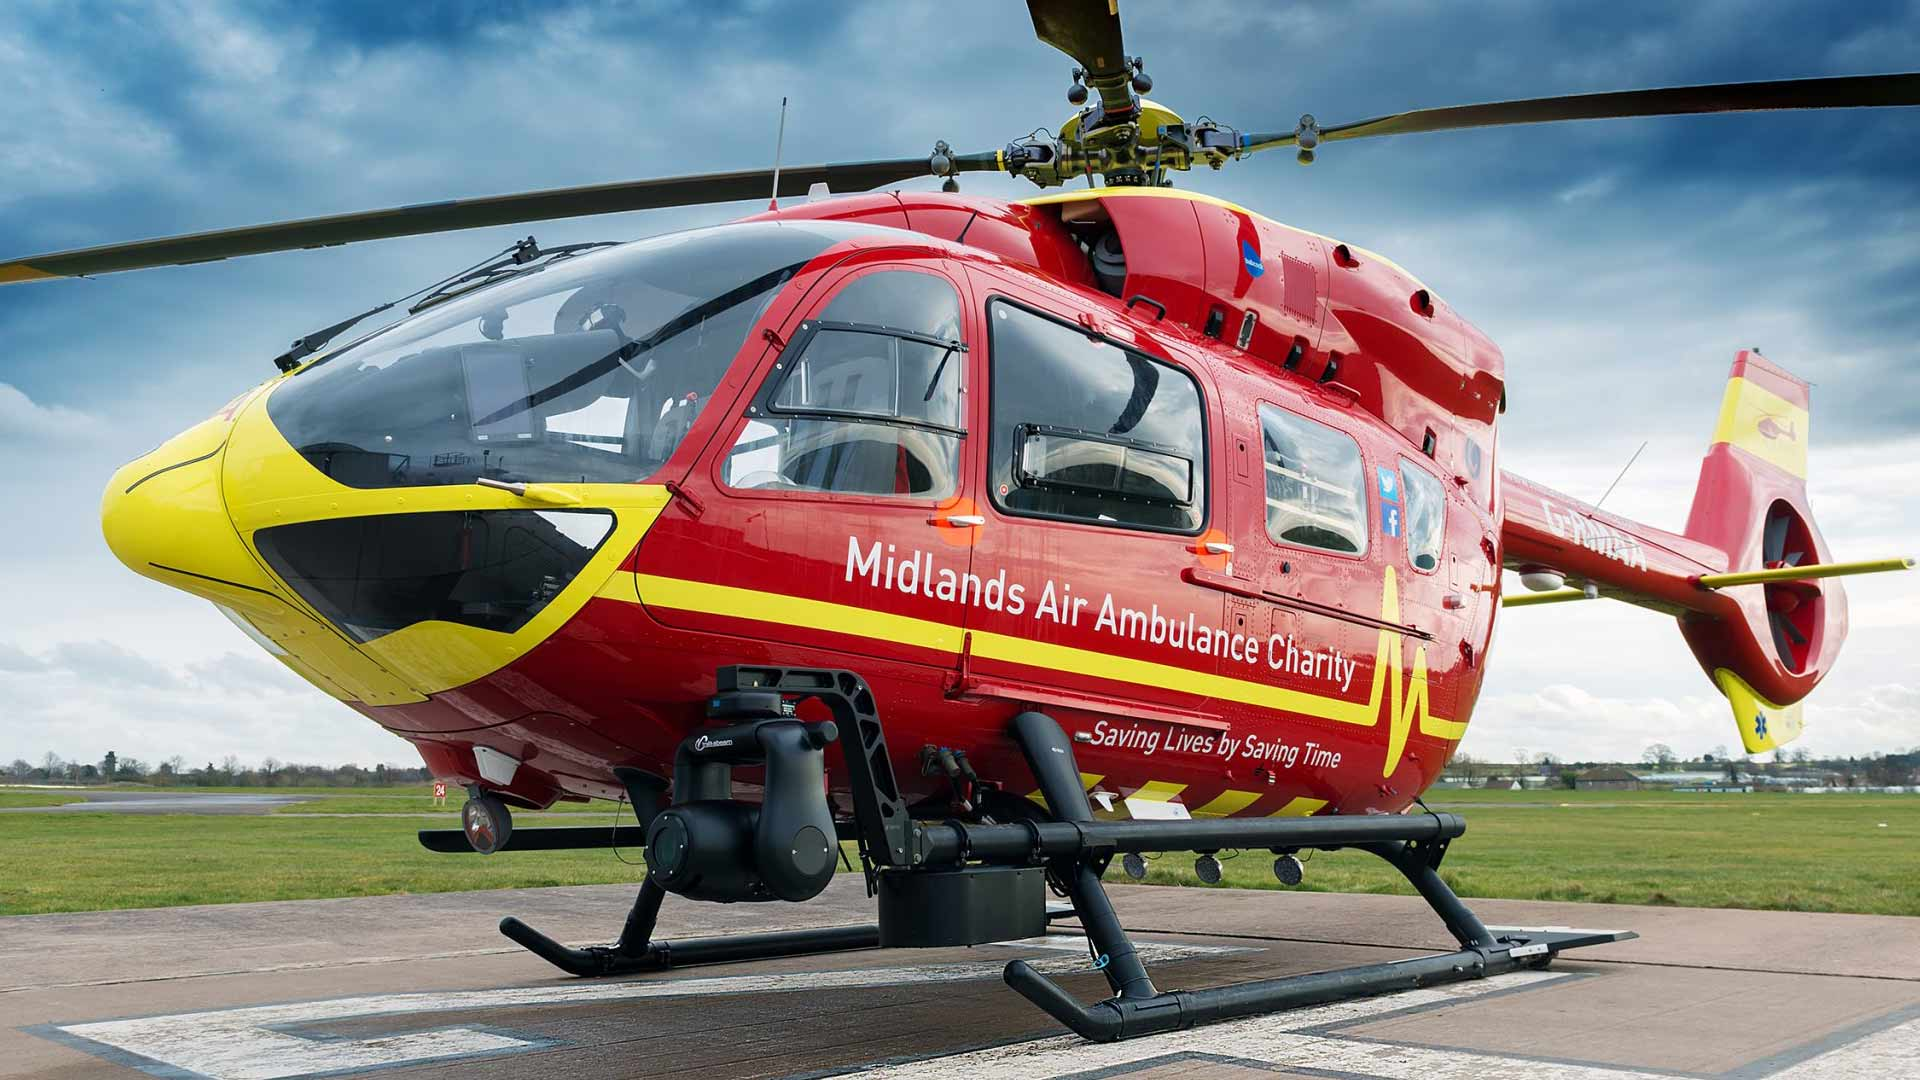 Midlands Air Ambulance nominated for the happiest workplace in the UK award